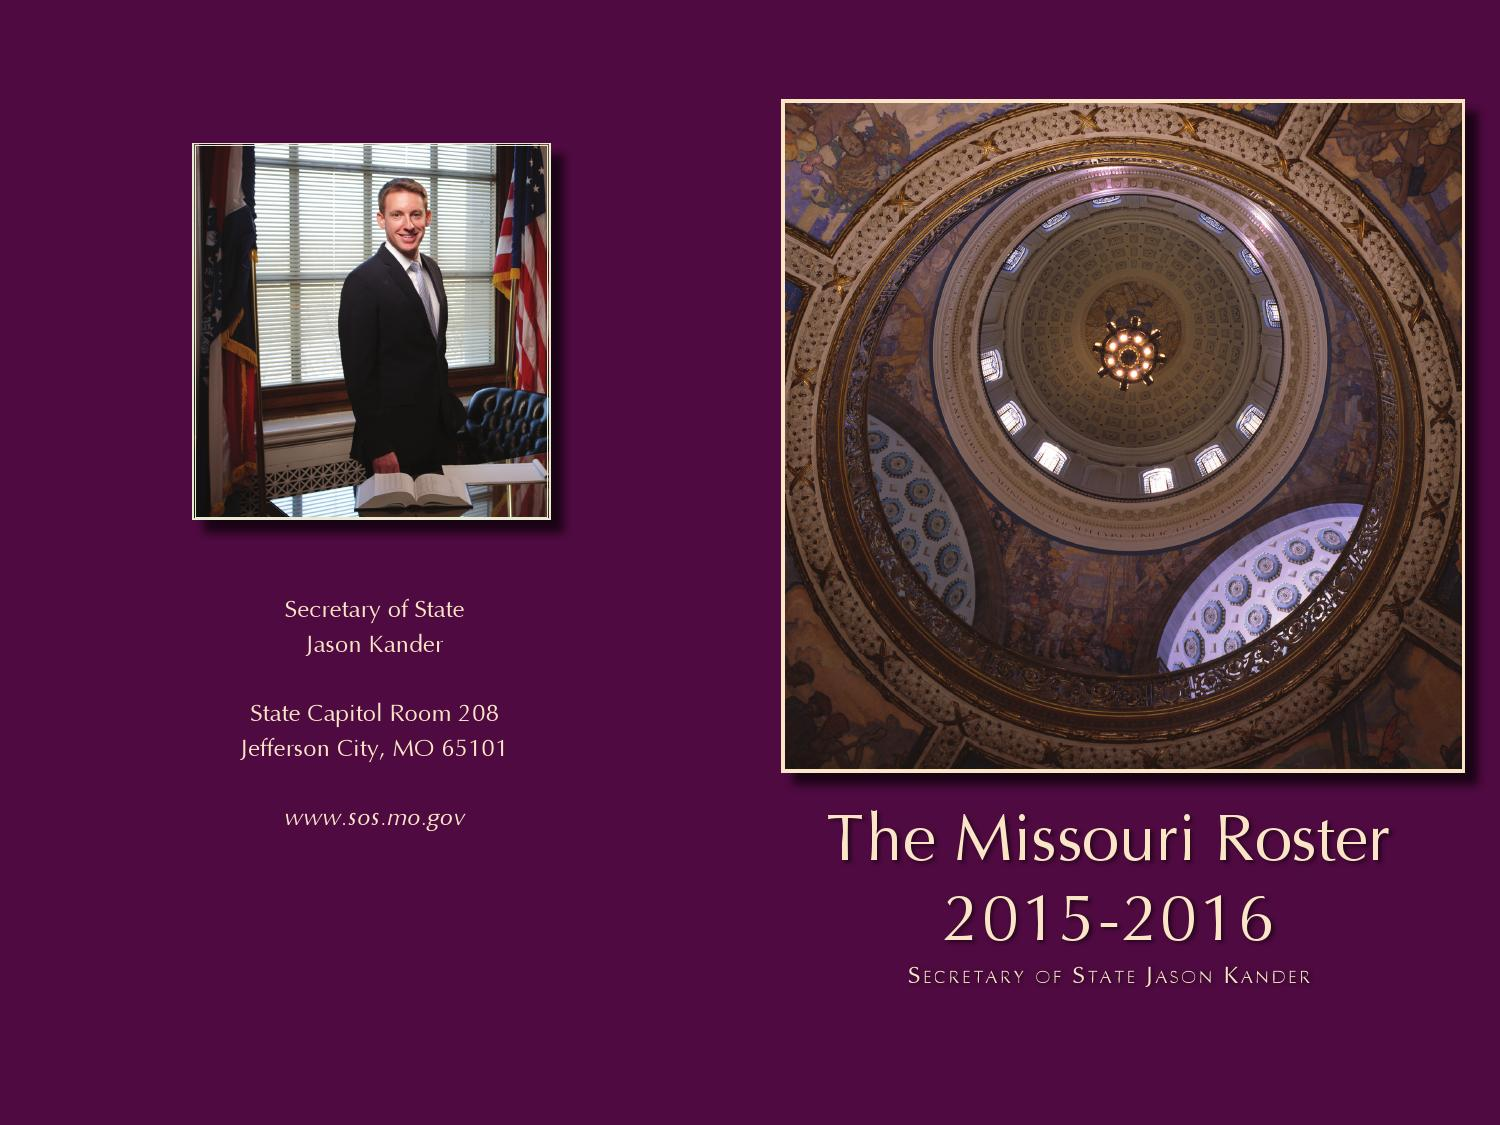 Missouri legislative roster 2015 2016 by Deb Powers - Issuu